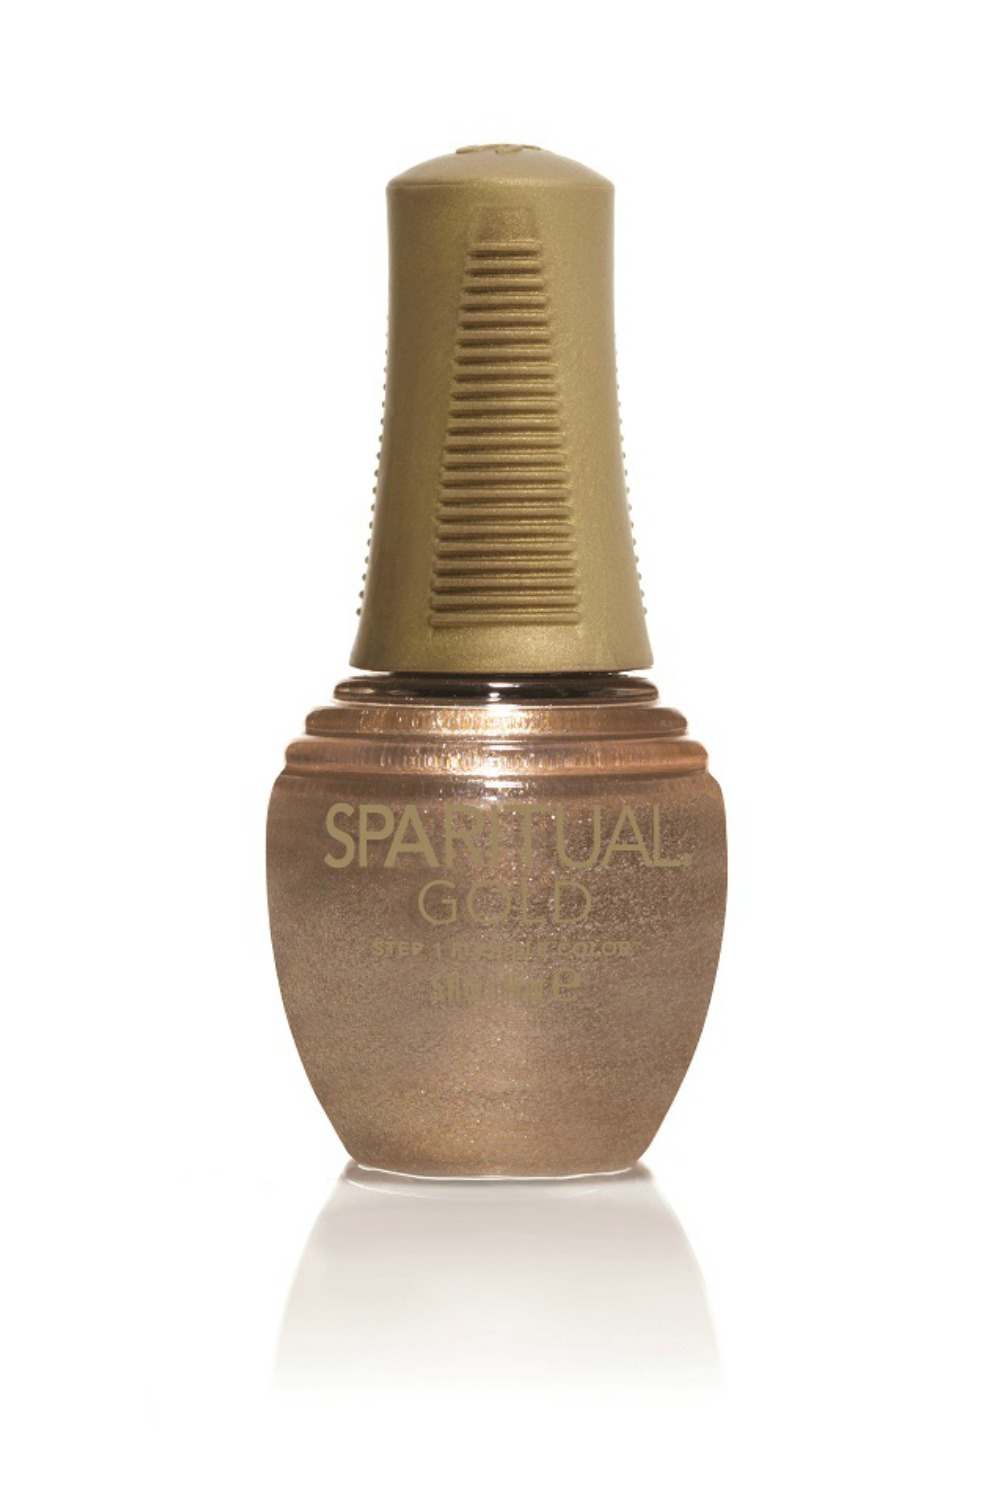 Foto Spa Ritual Gold Collectie Heirloom